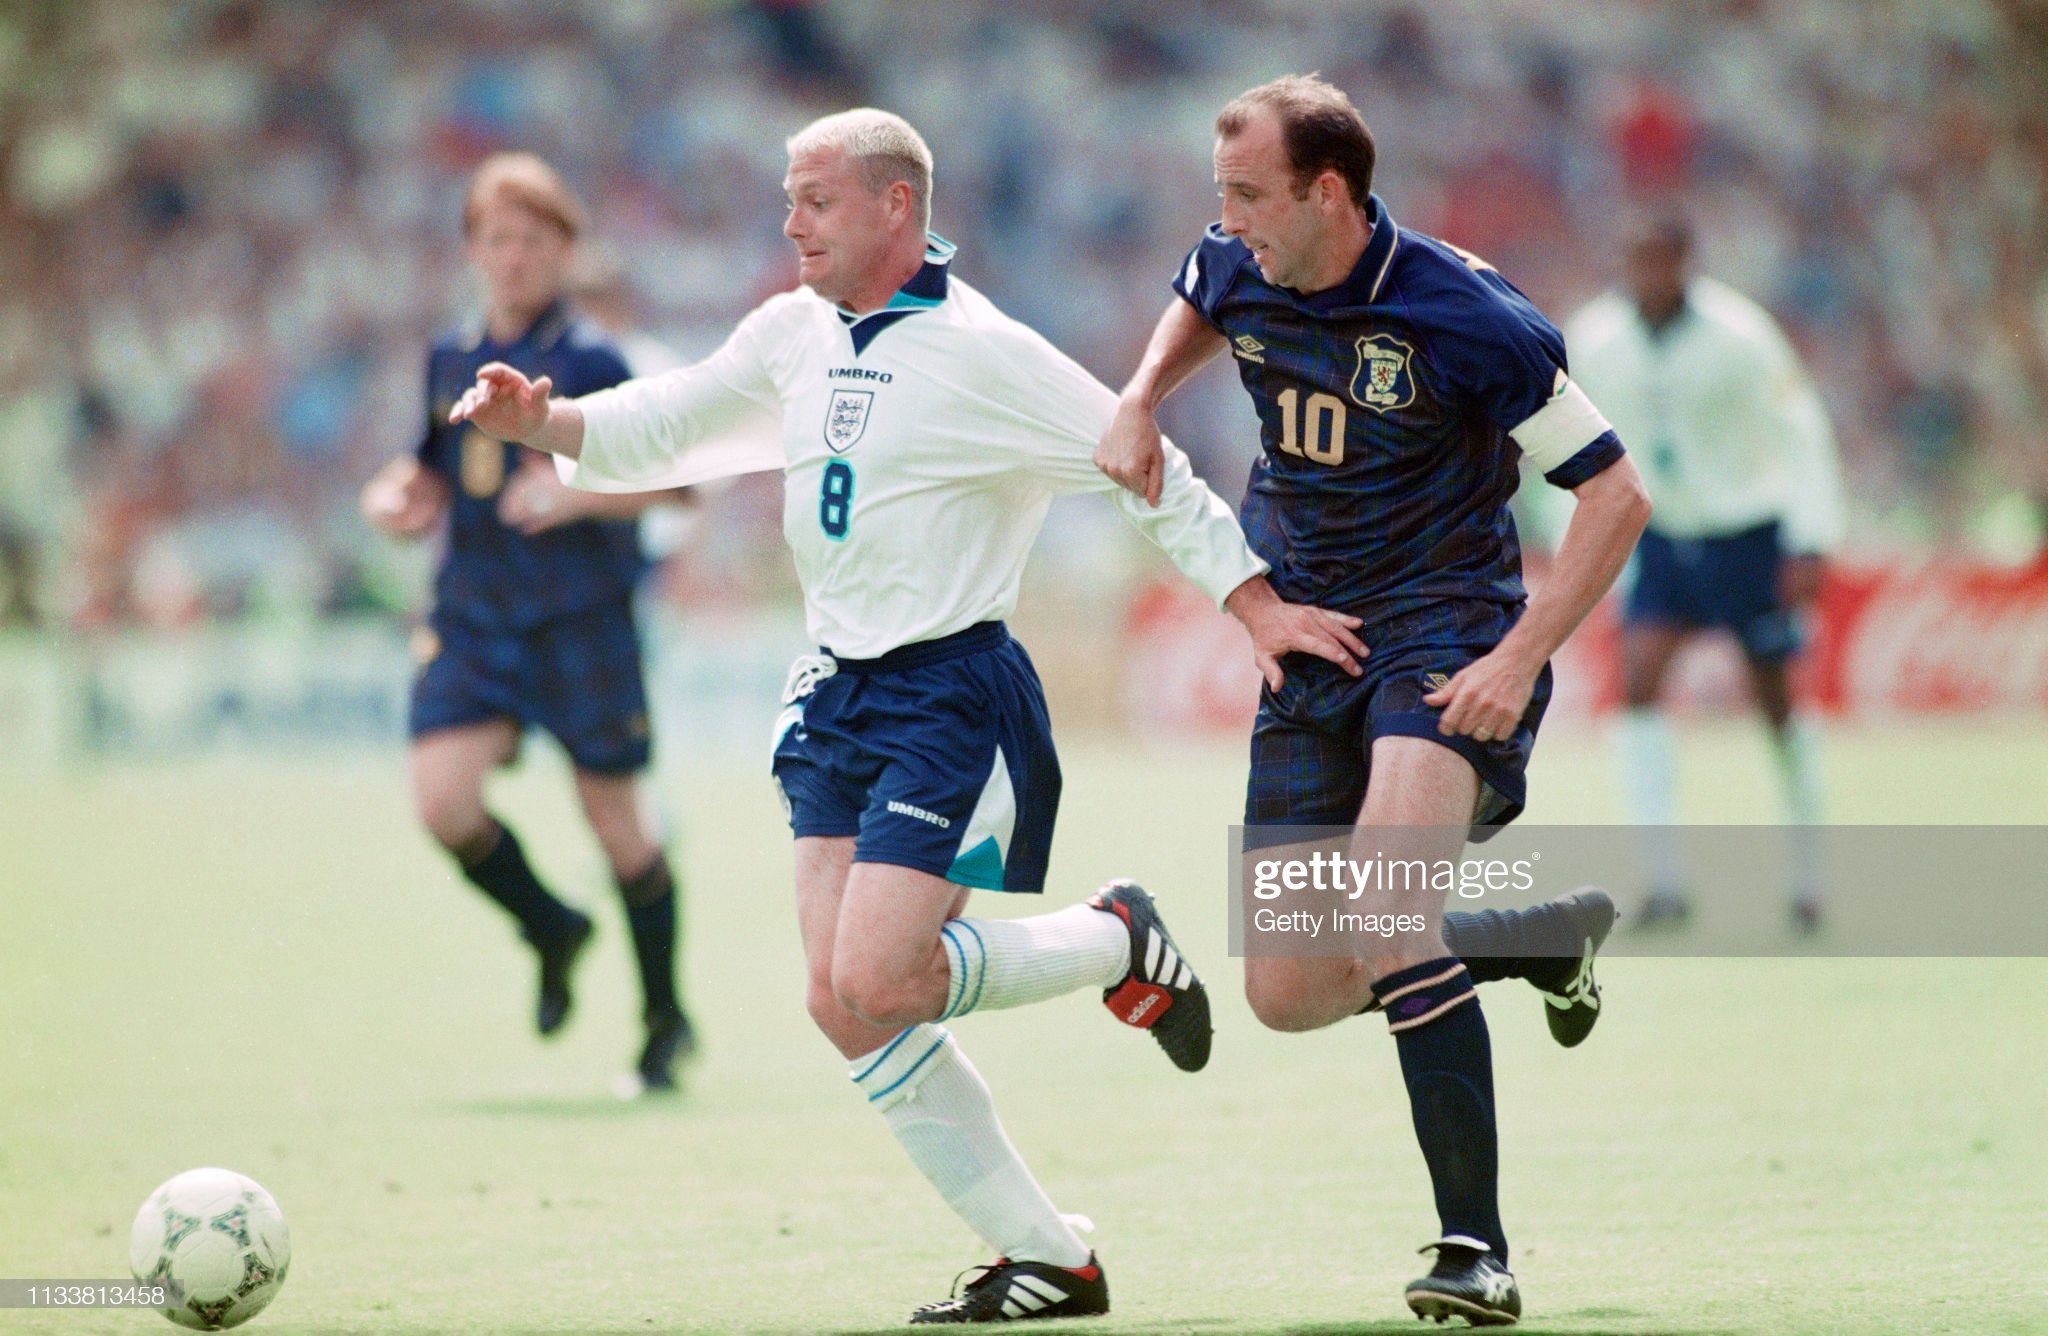 Paul Gascoigne England v Scotland Euro 1996 : News Photo